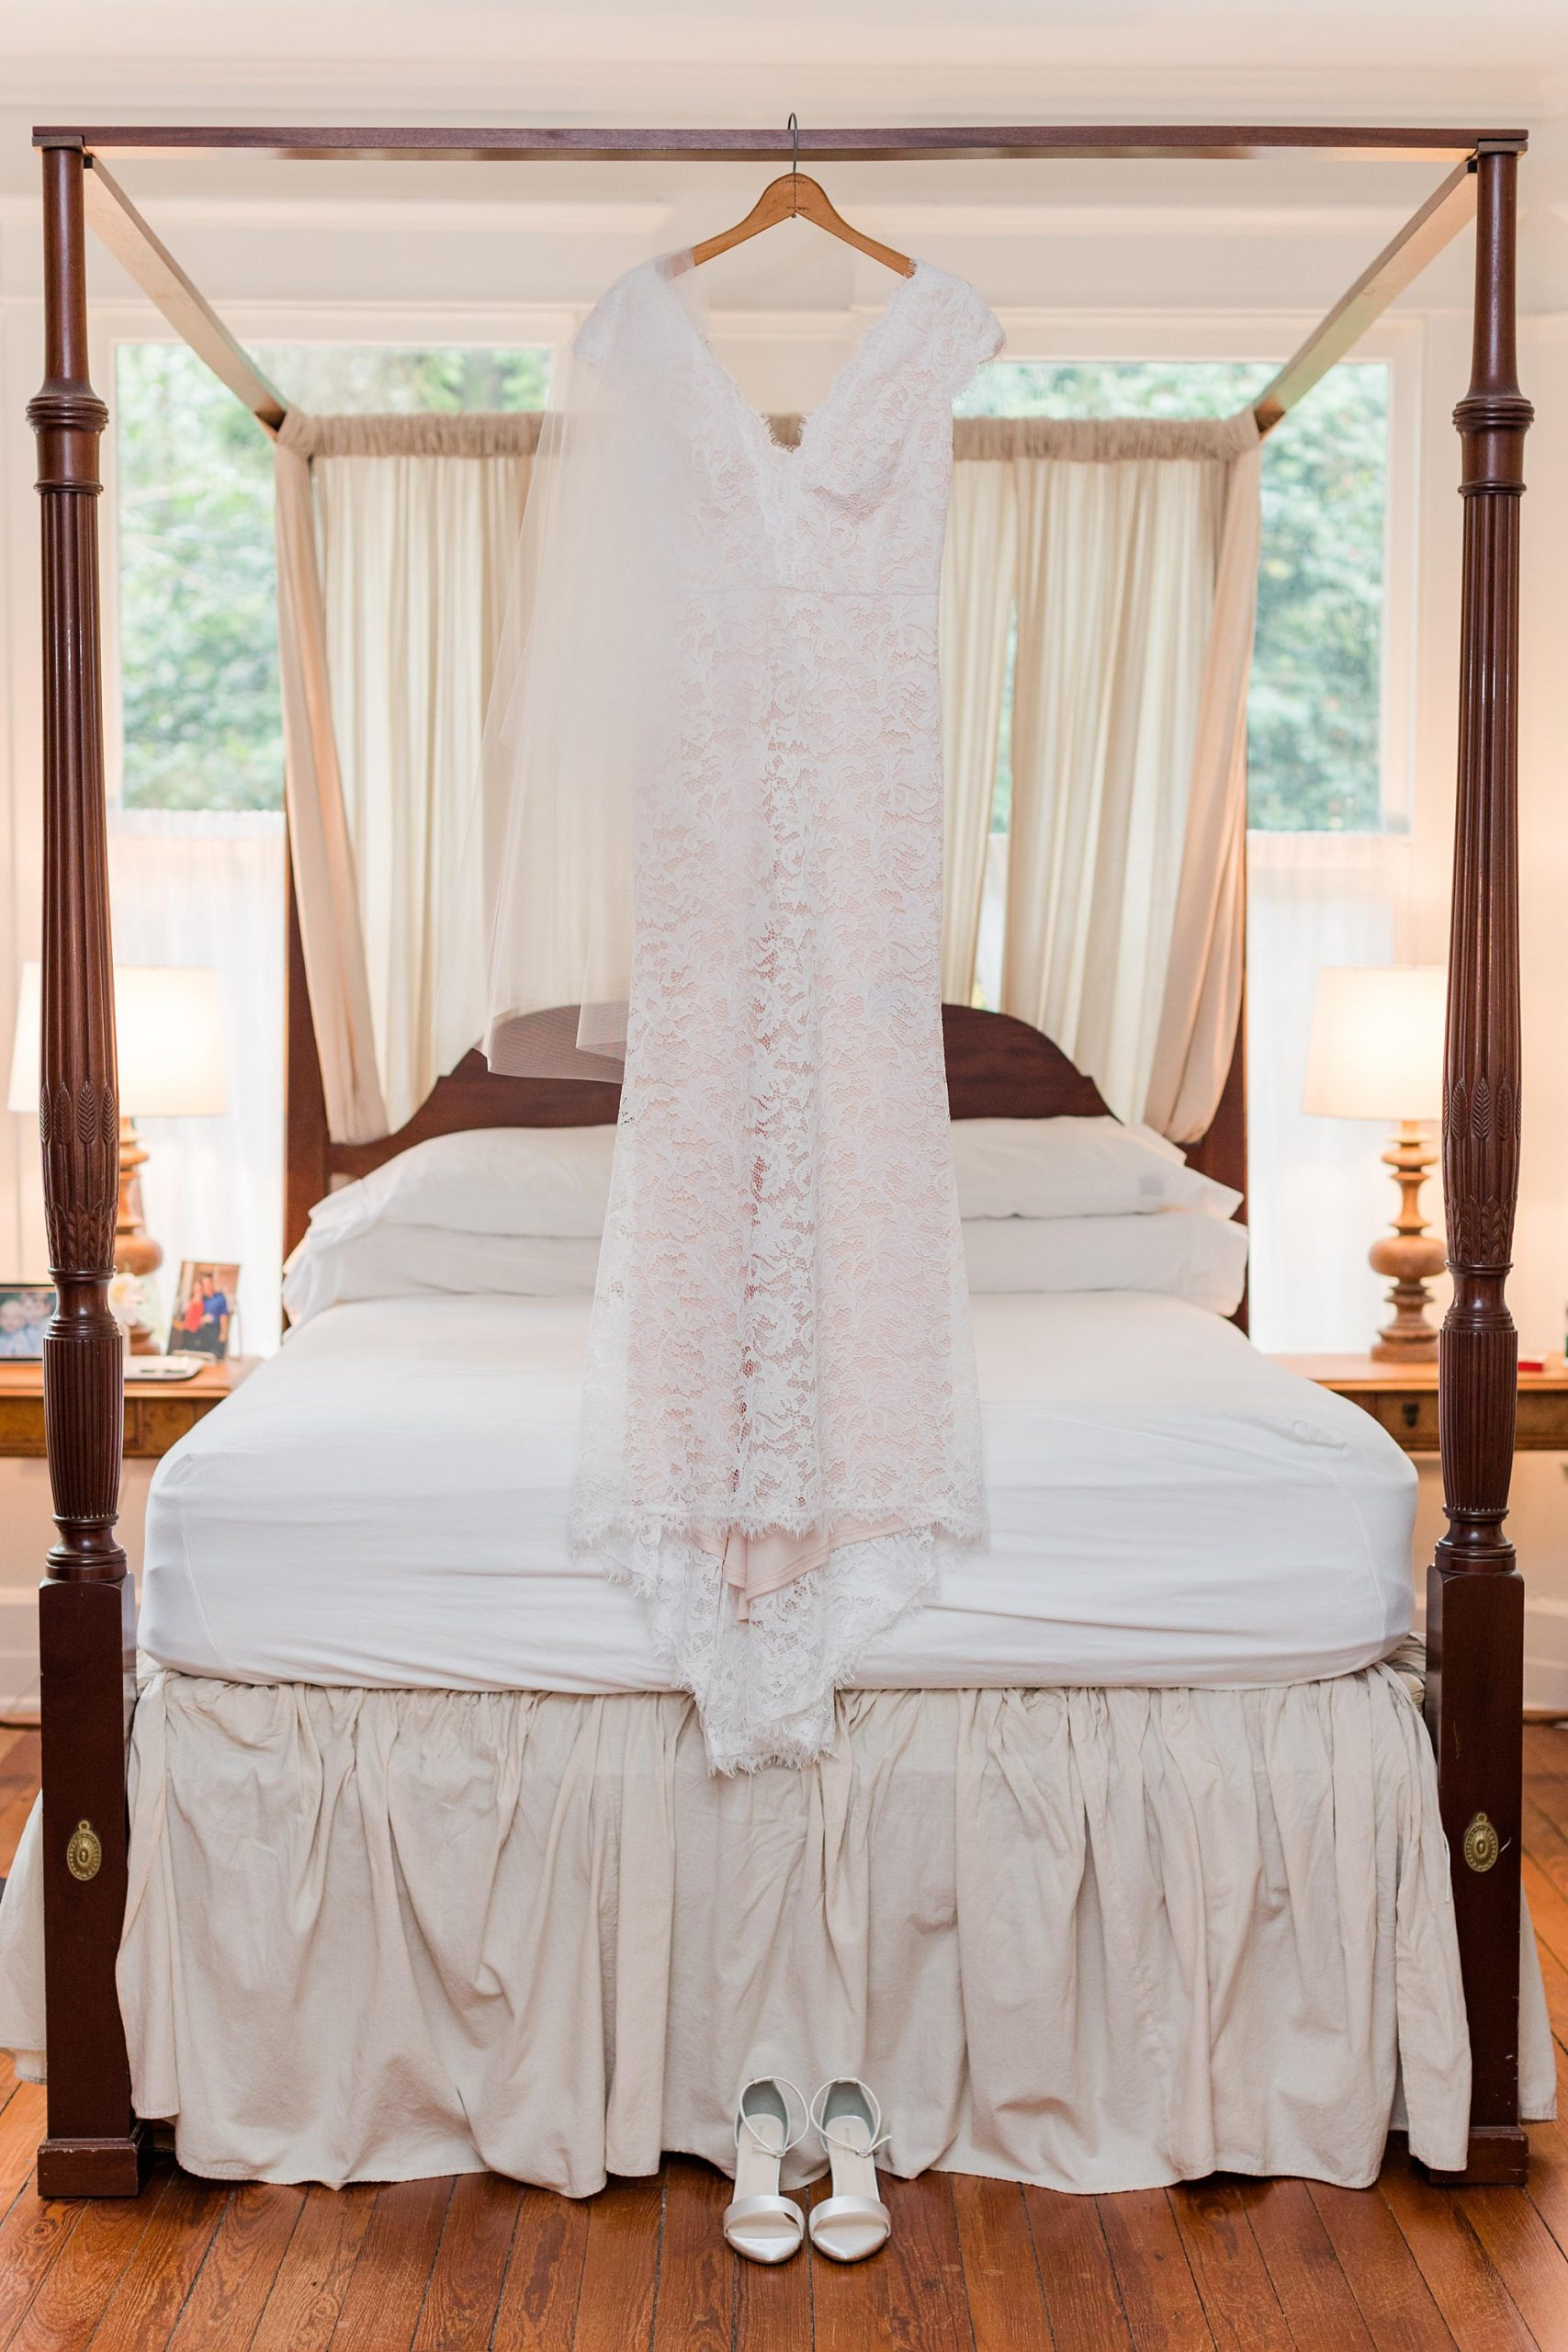 wedding gown hangs on bed in childhood home